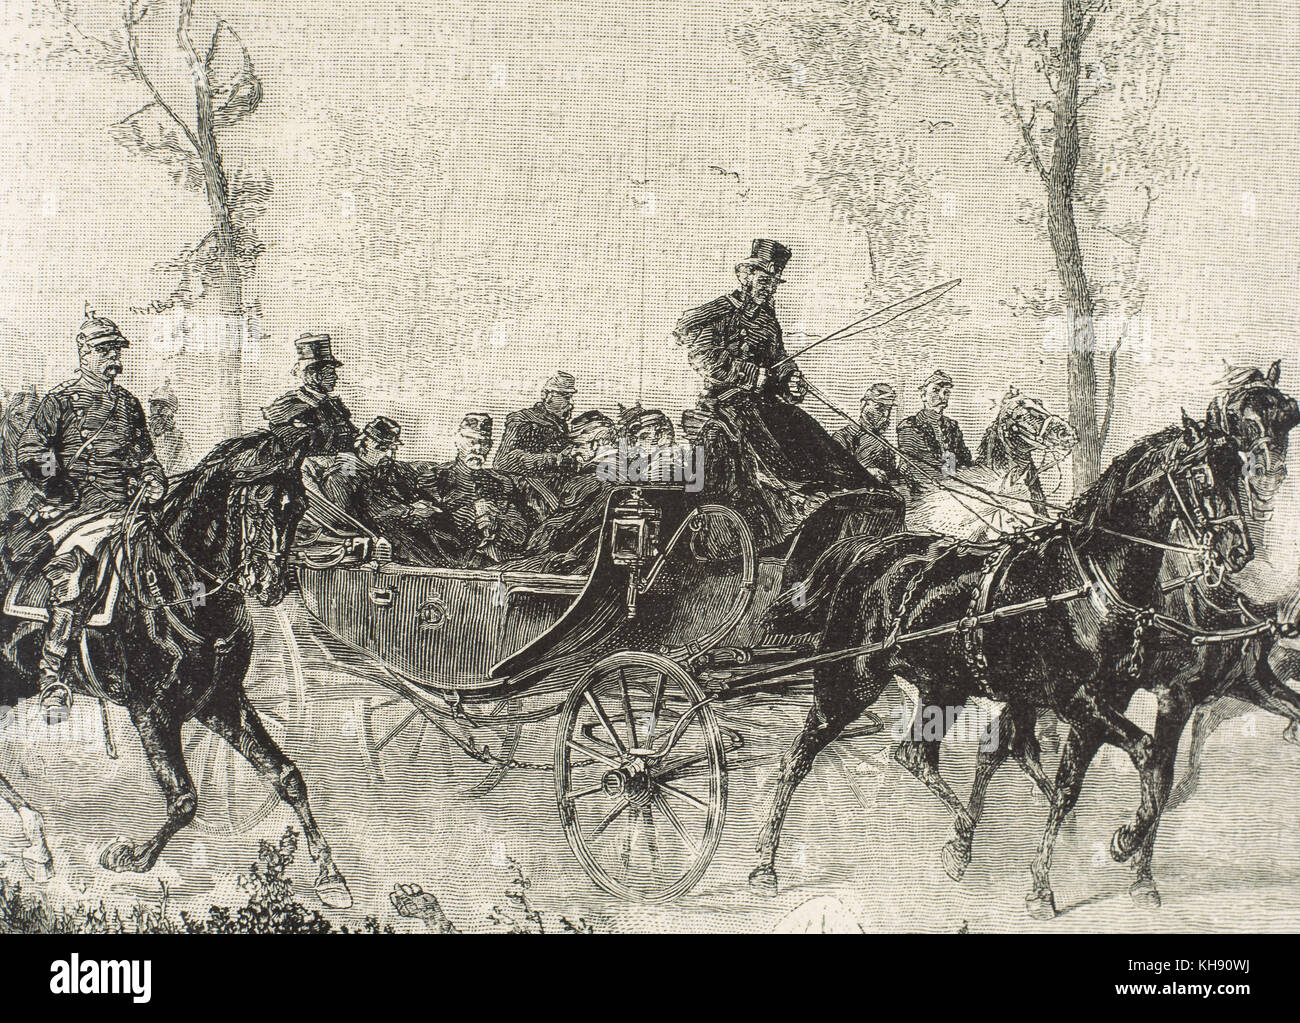 Franco-Prussian War. 1870-1871. Napoleon III Bonaparte (1808-1873) taken prisoner by the Prussian army after the Battle of Sedan (September, 1870). Engraving. 19th century. Stock Photo